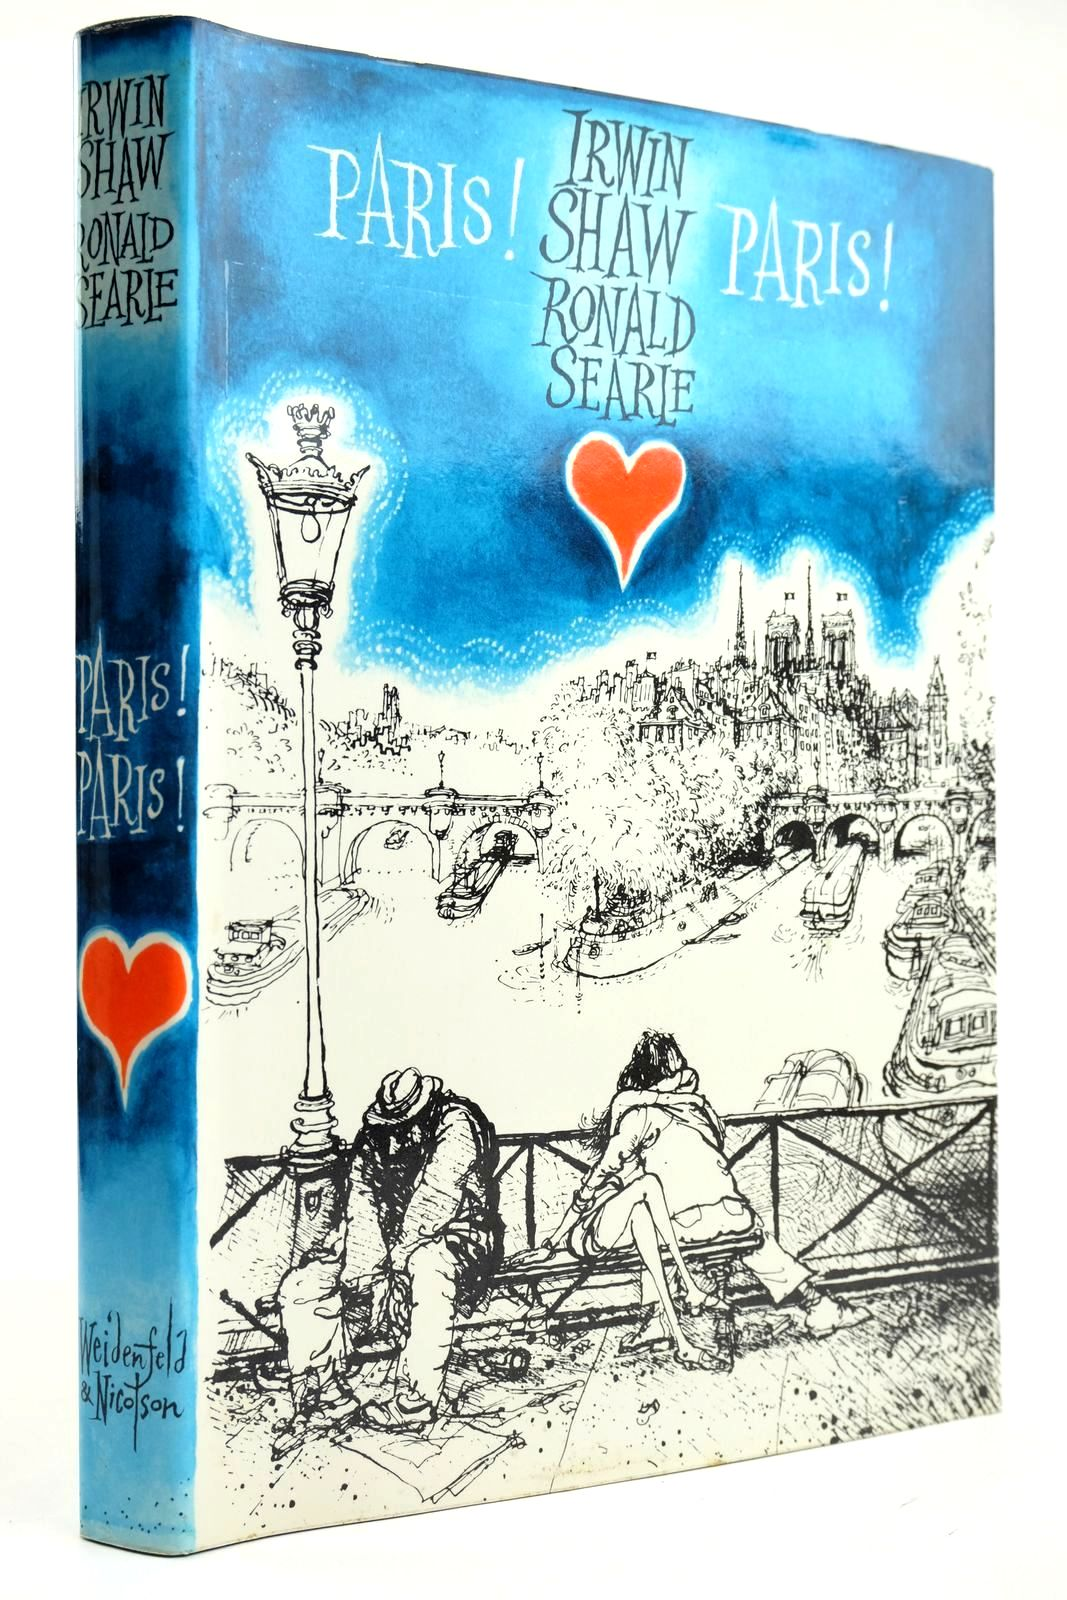 Photo of PARIS! PARIS! written by Shaw, Irwin illustrated by Searle, Ronald published by Weidenfeld and Nicolson (STOCK CODE: 2132491)  for sale by Stella & Rose's Books